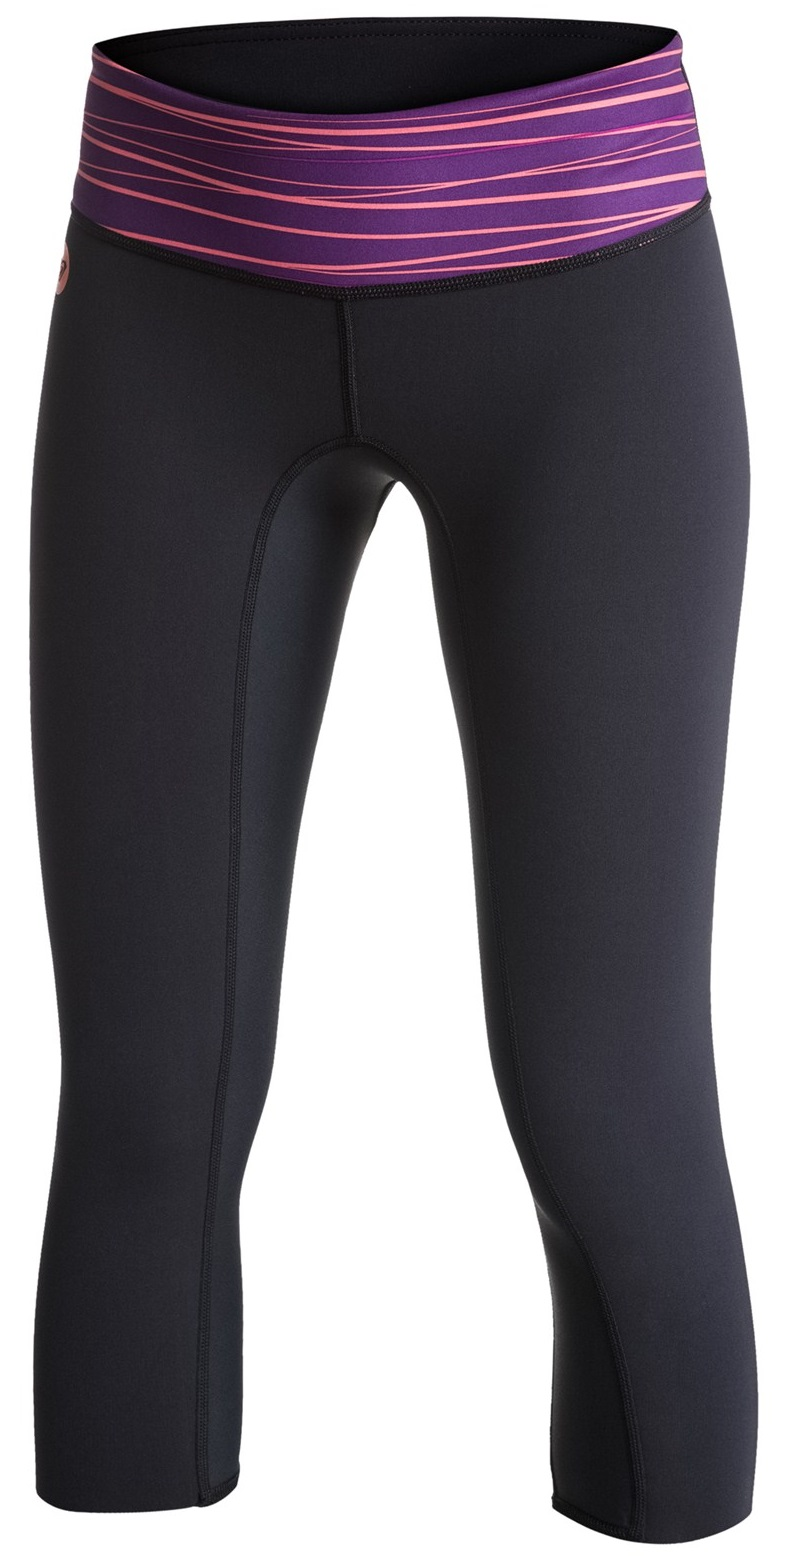 Roxy XY 1mm Inside Break Neo Capri Women's Pant Black/Purple